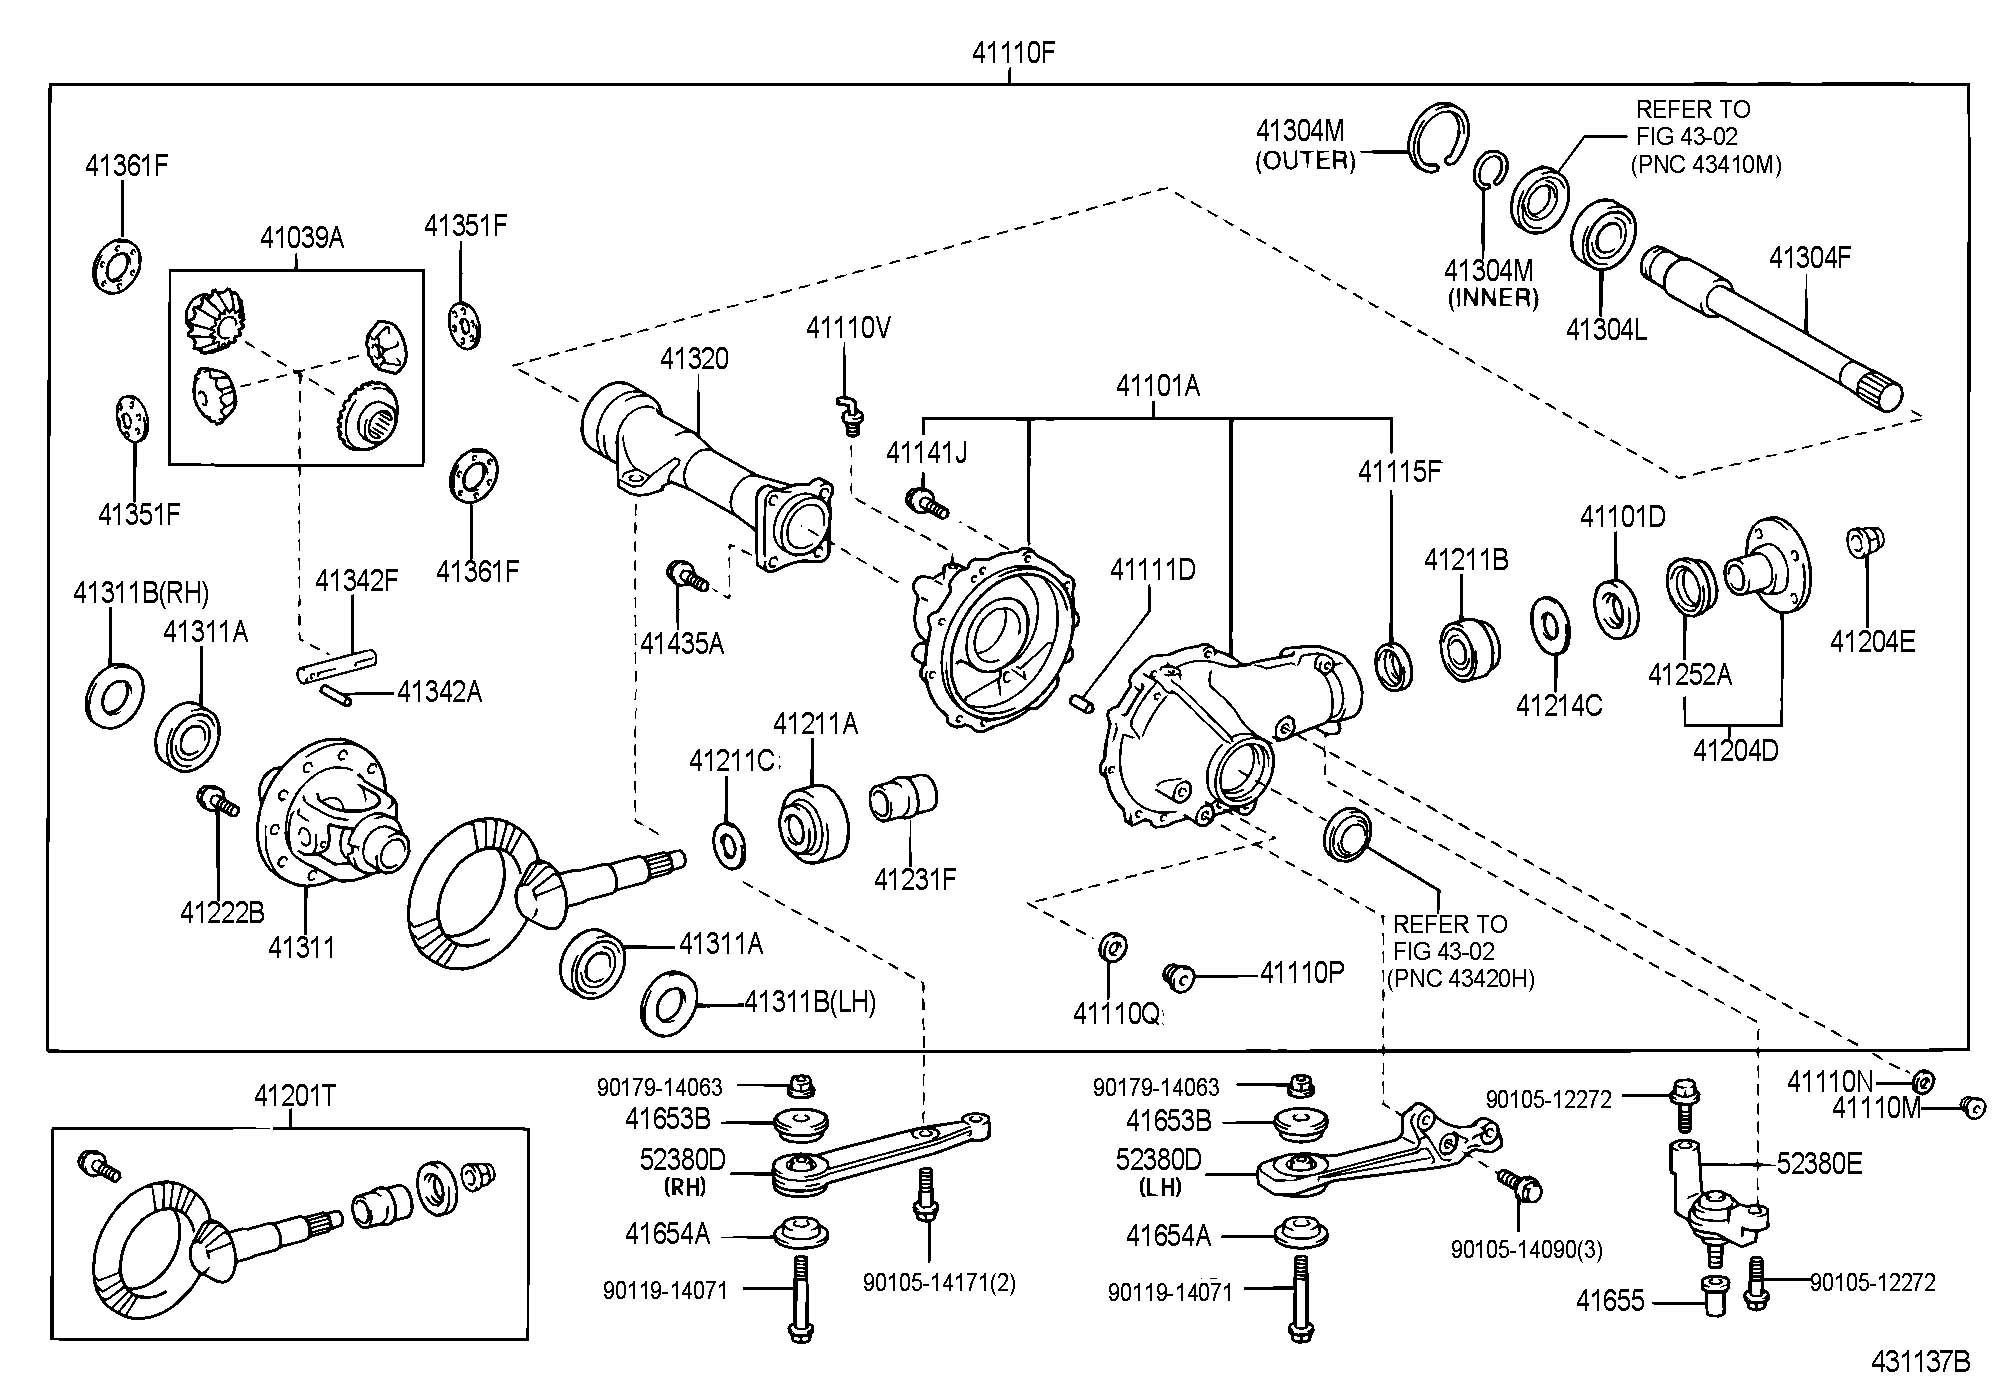 Diagram Wiring Diagram For Toyota 4runner Full